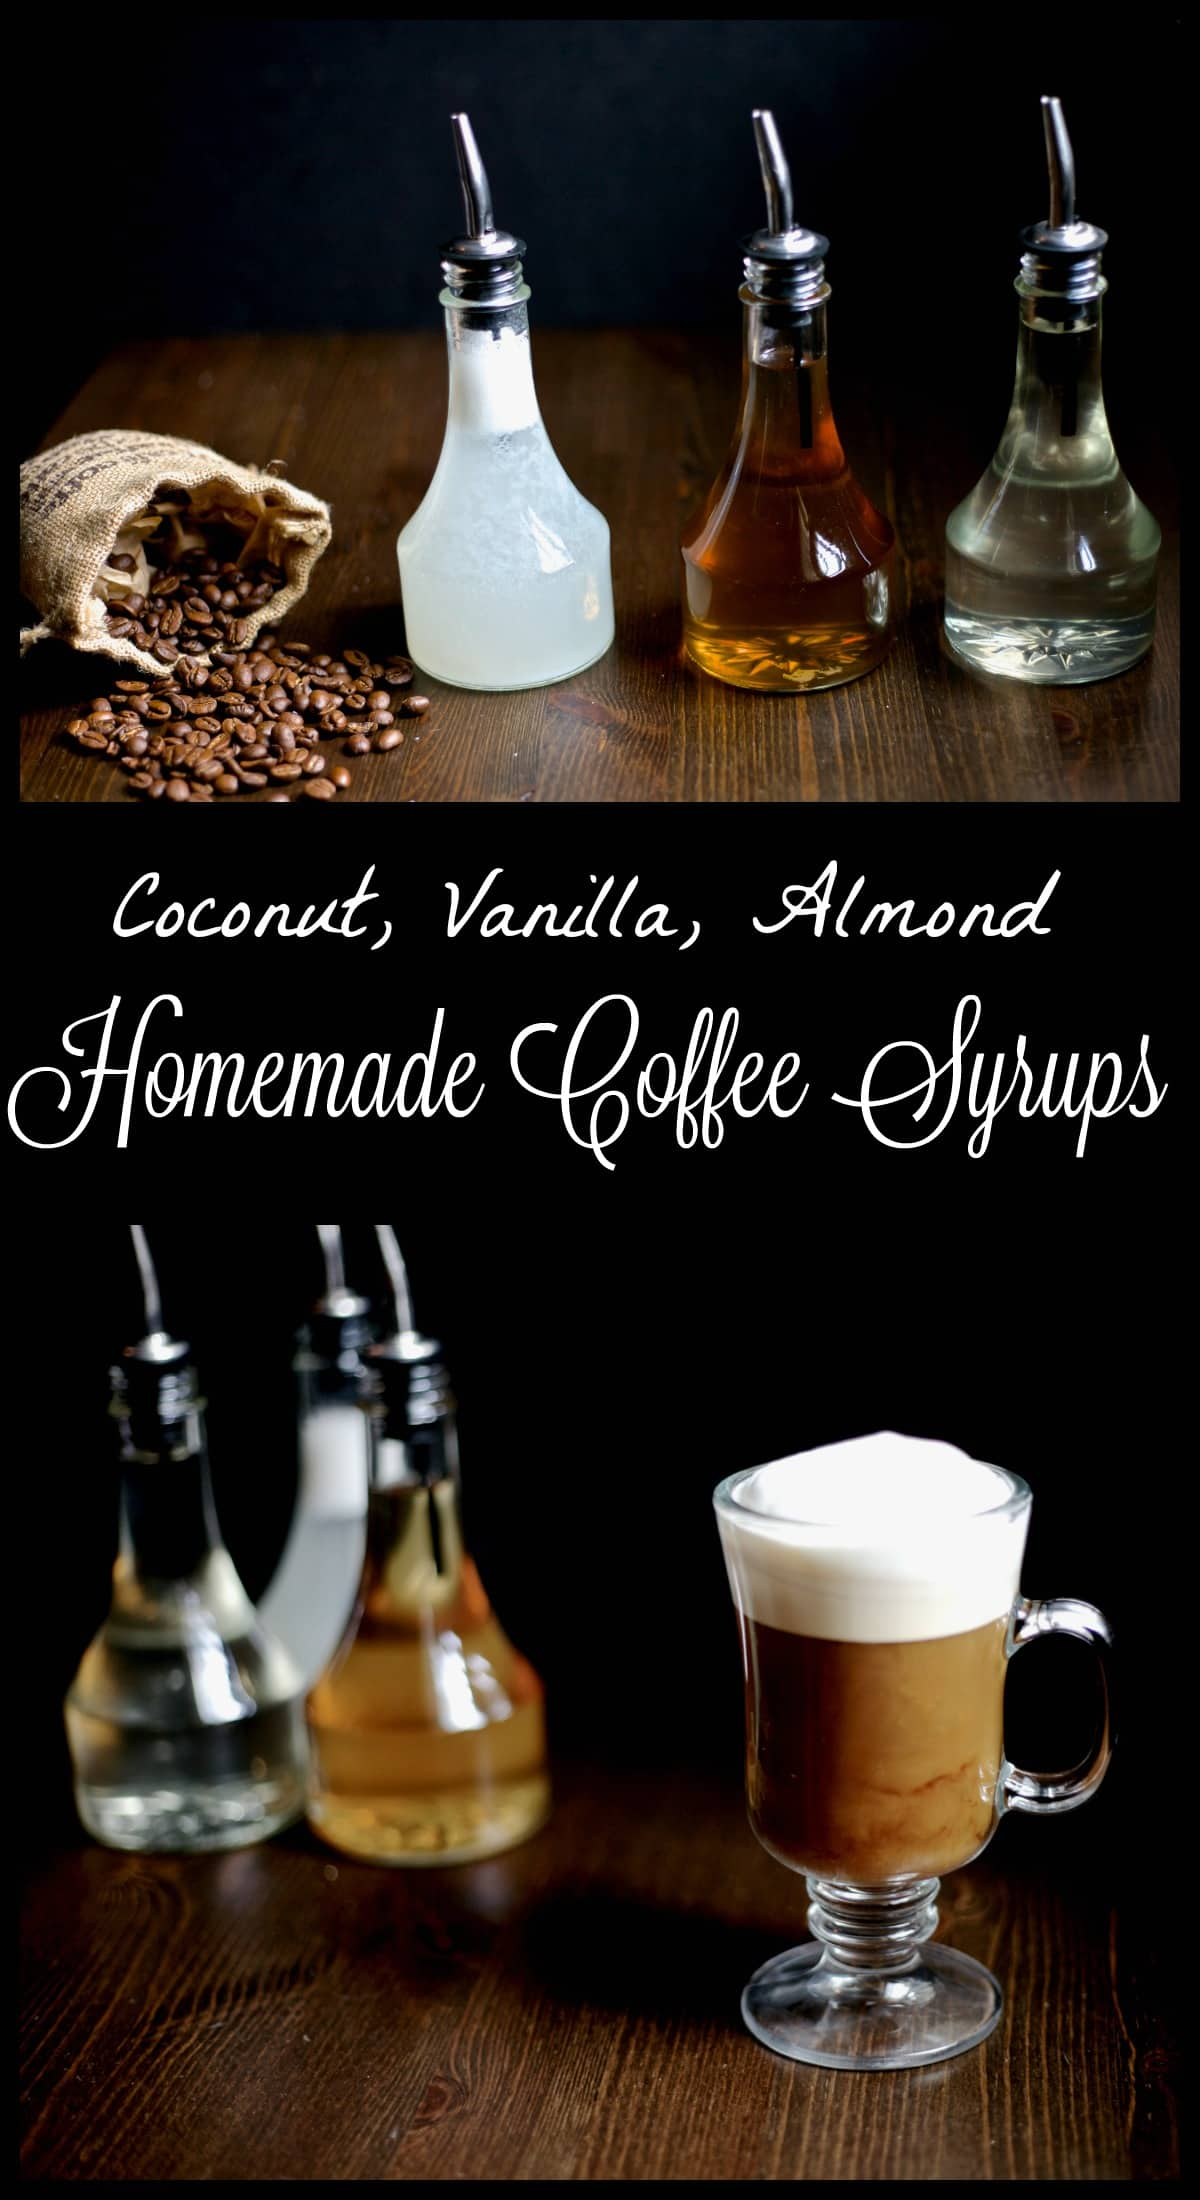 Homemade flavored coffee syrups are a healthier and easy way to jazz up your coffee without